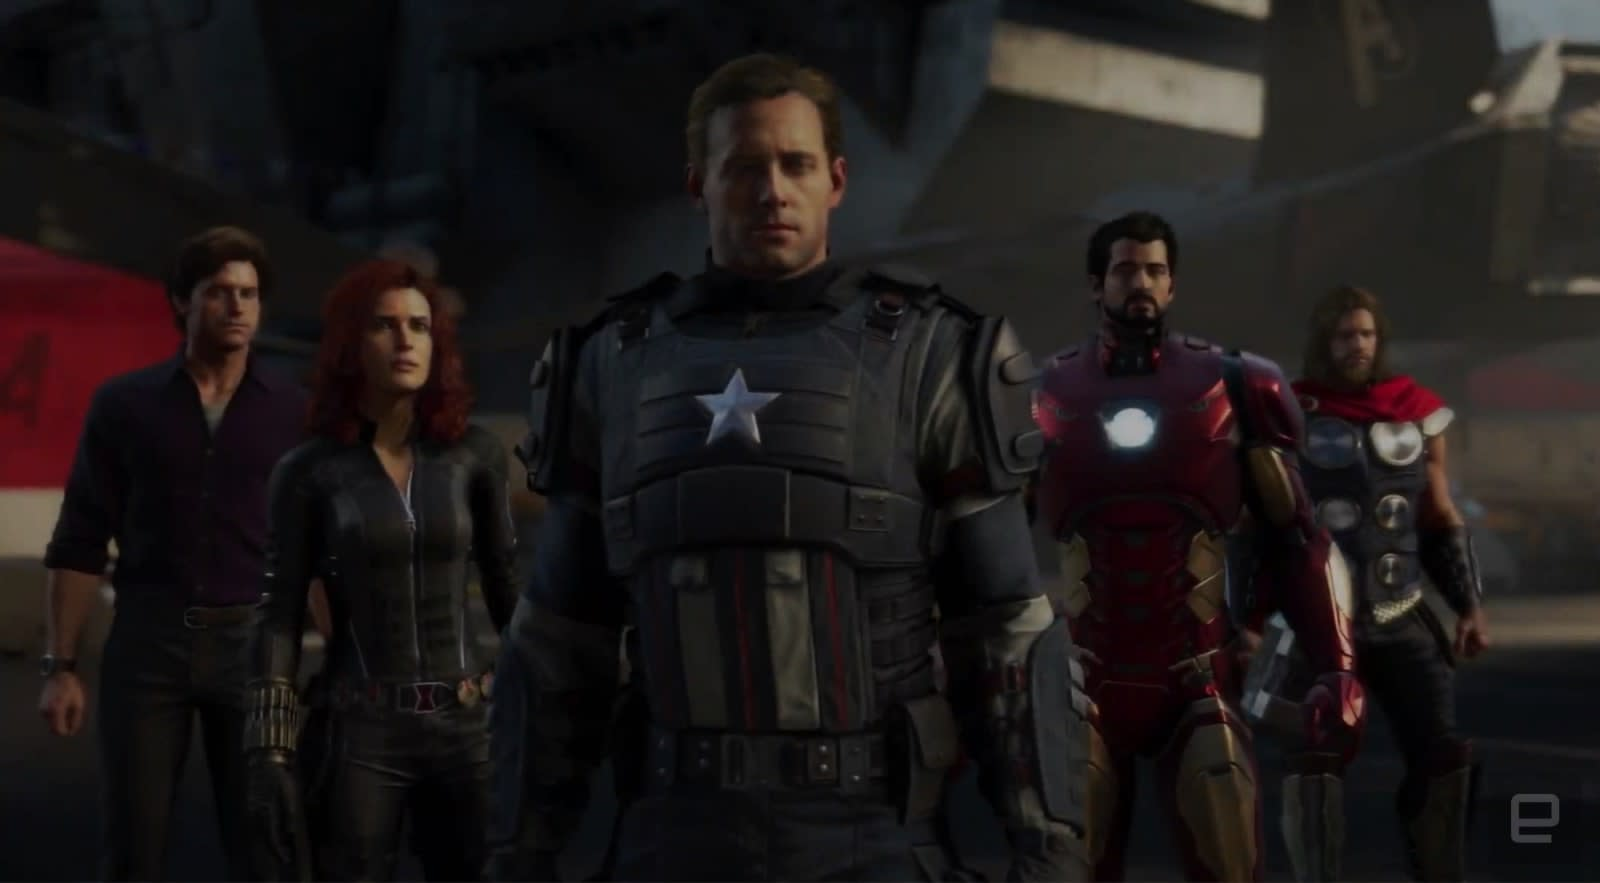 Square Enix's Marvel's Avengers arrives May 15th, 2020